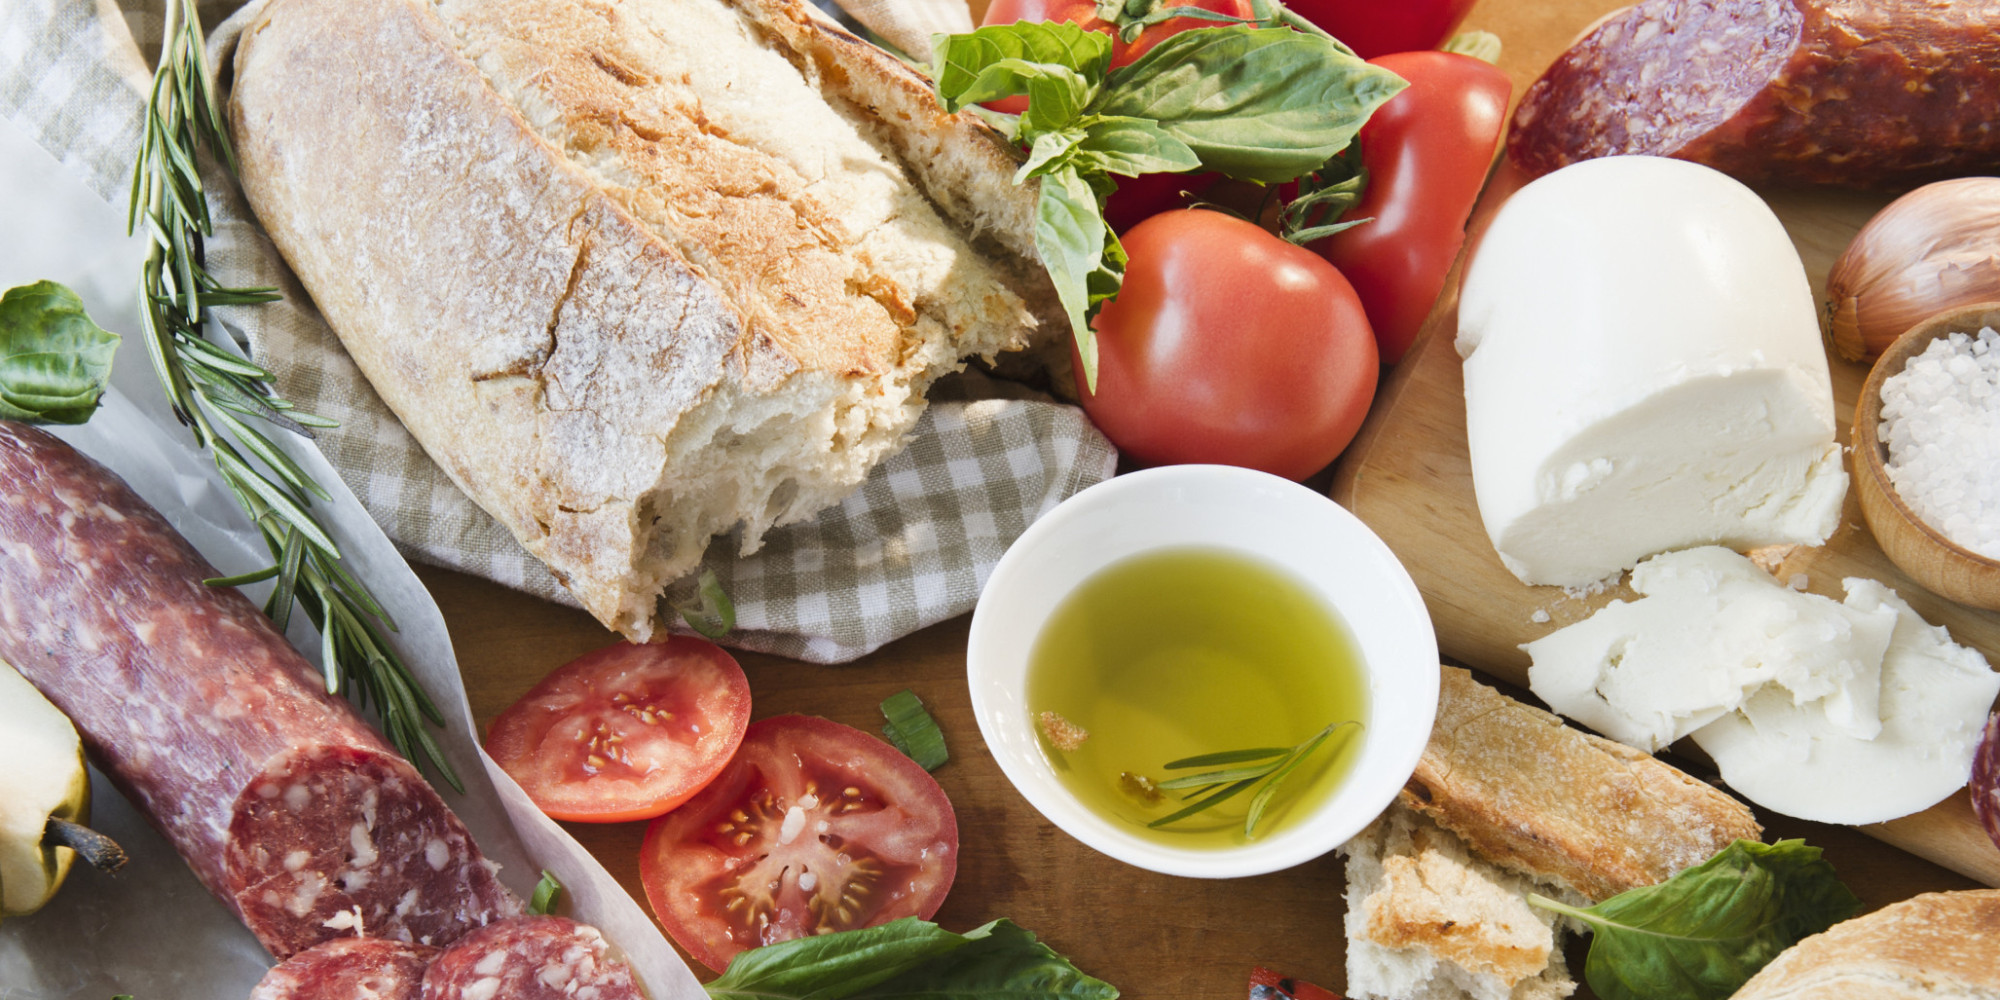 Italian cuisine and its intricacies huffpost for Italian meals